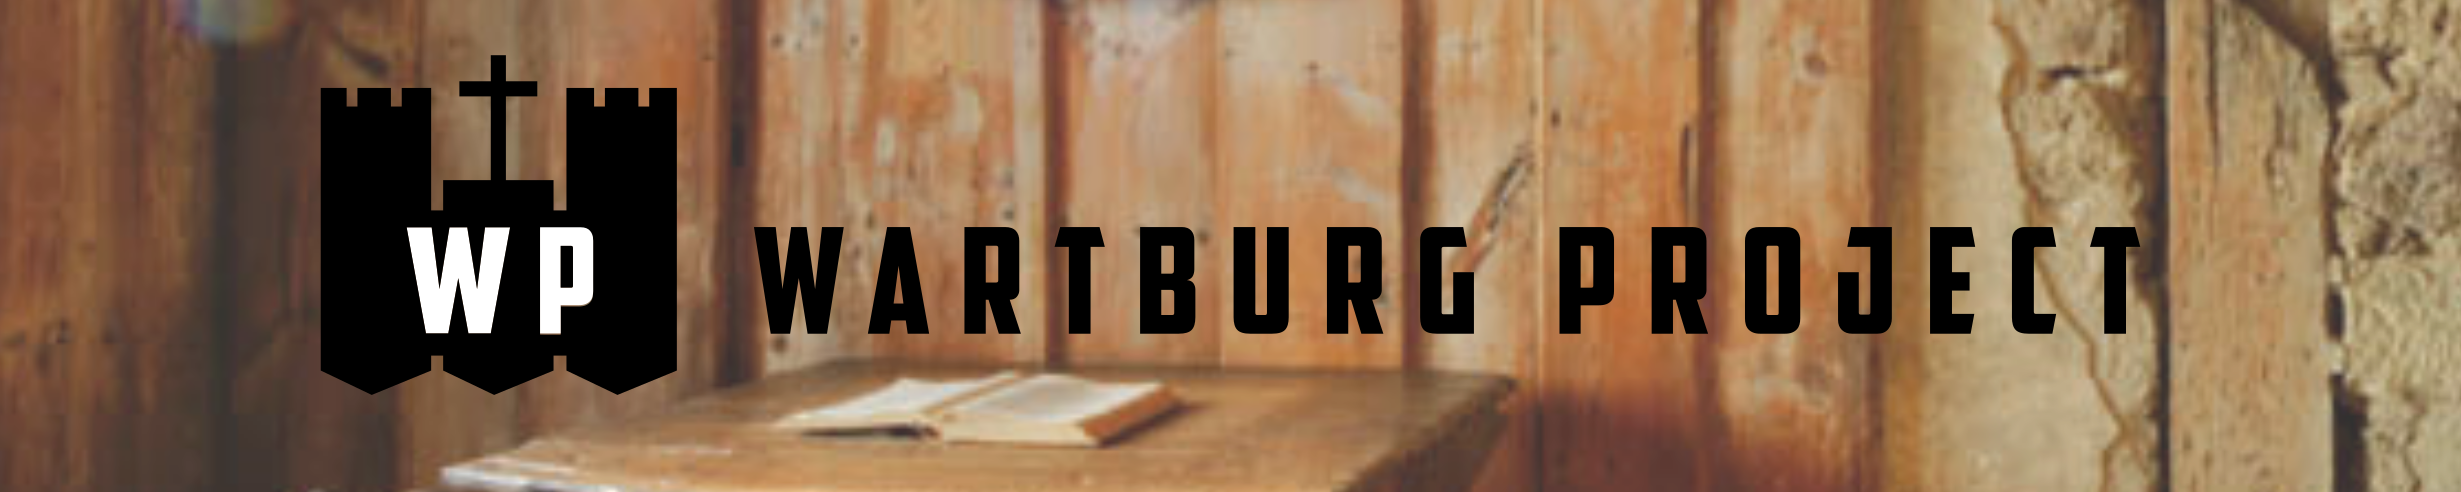 The Wartburg Project is a group of Lutheran pastors and professors who are working together to produce a new translation of the Bible, the Evangelical Heritage Version™.